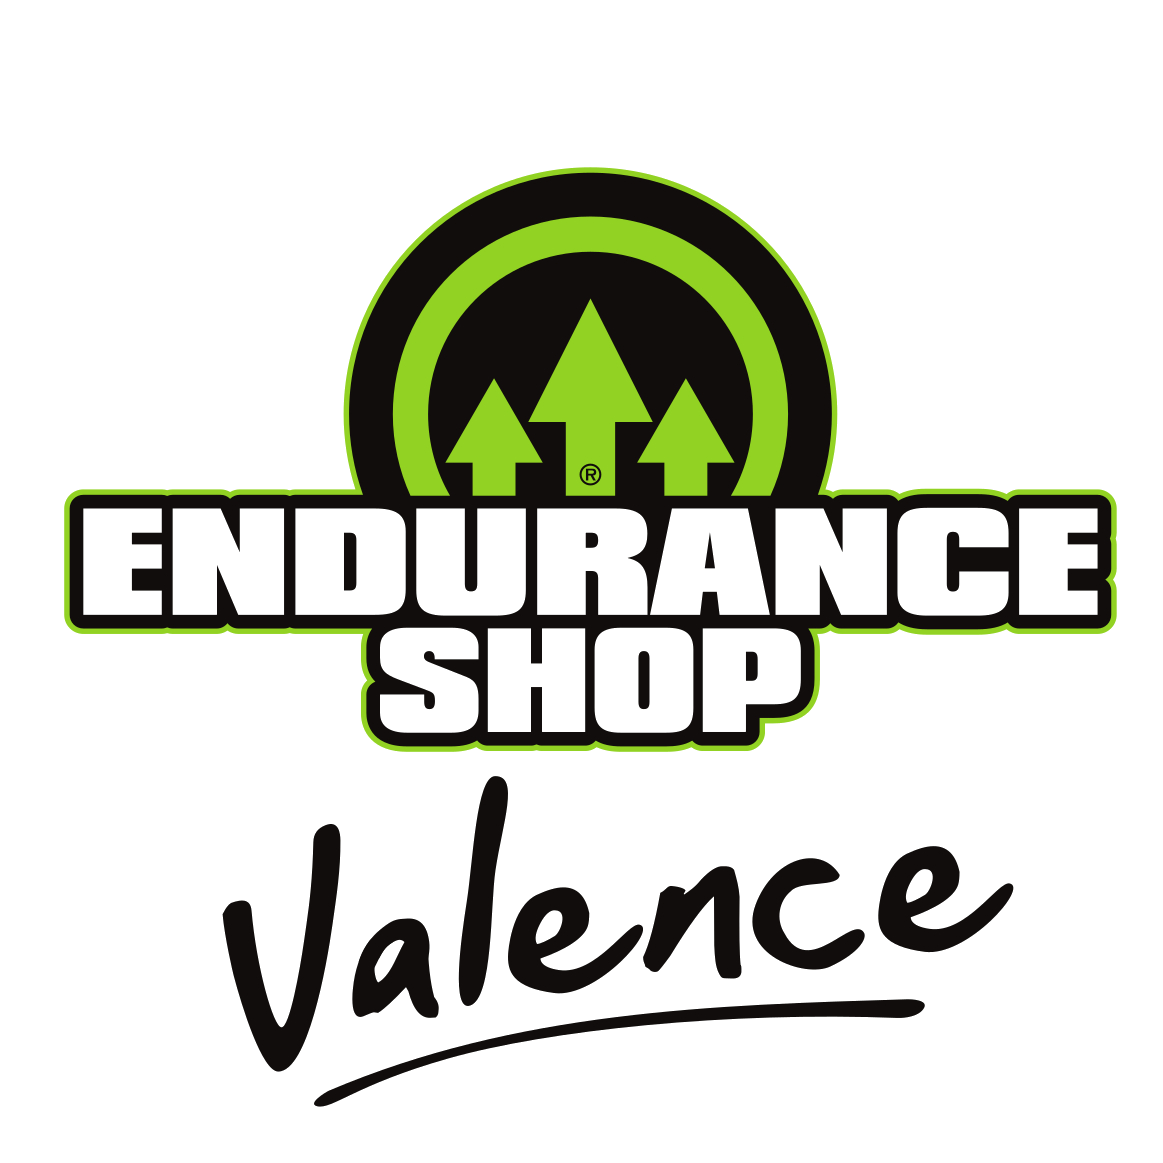 LOGO ENDURANCE SHOP 3 3